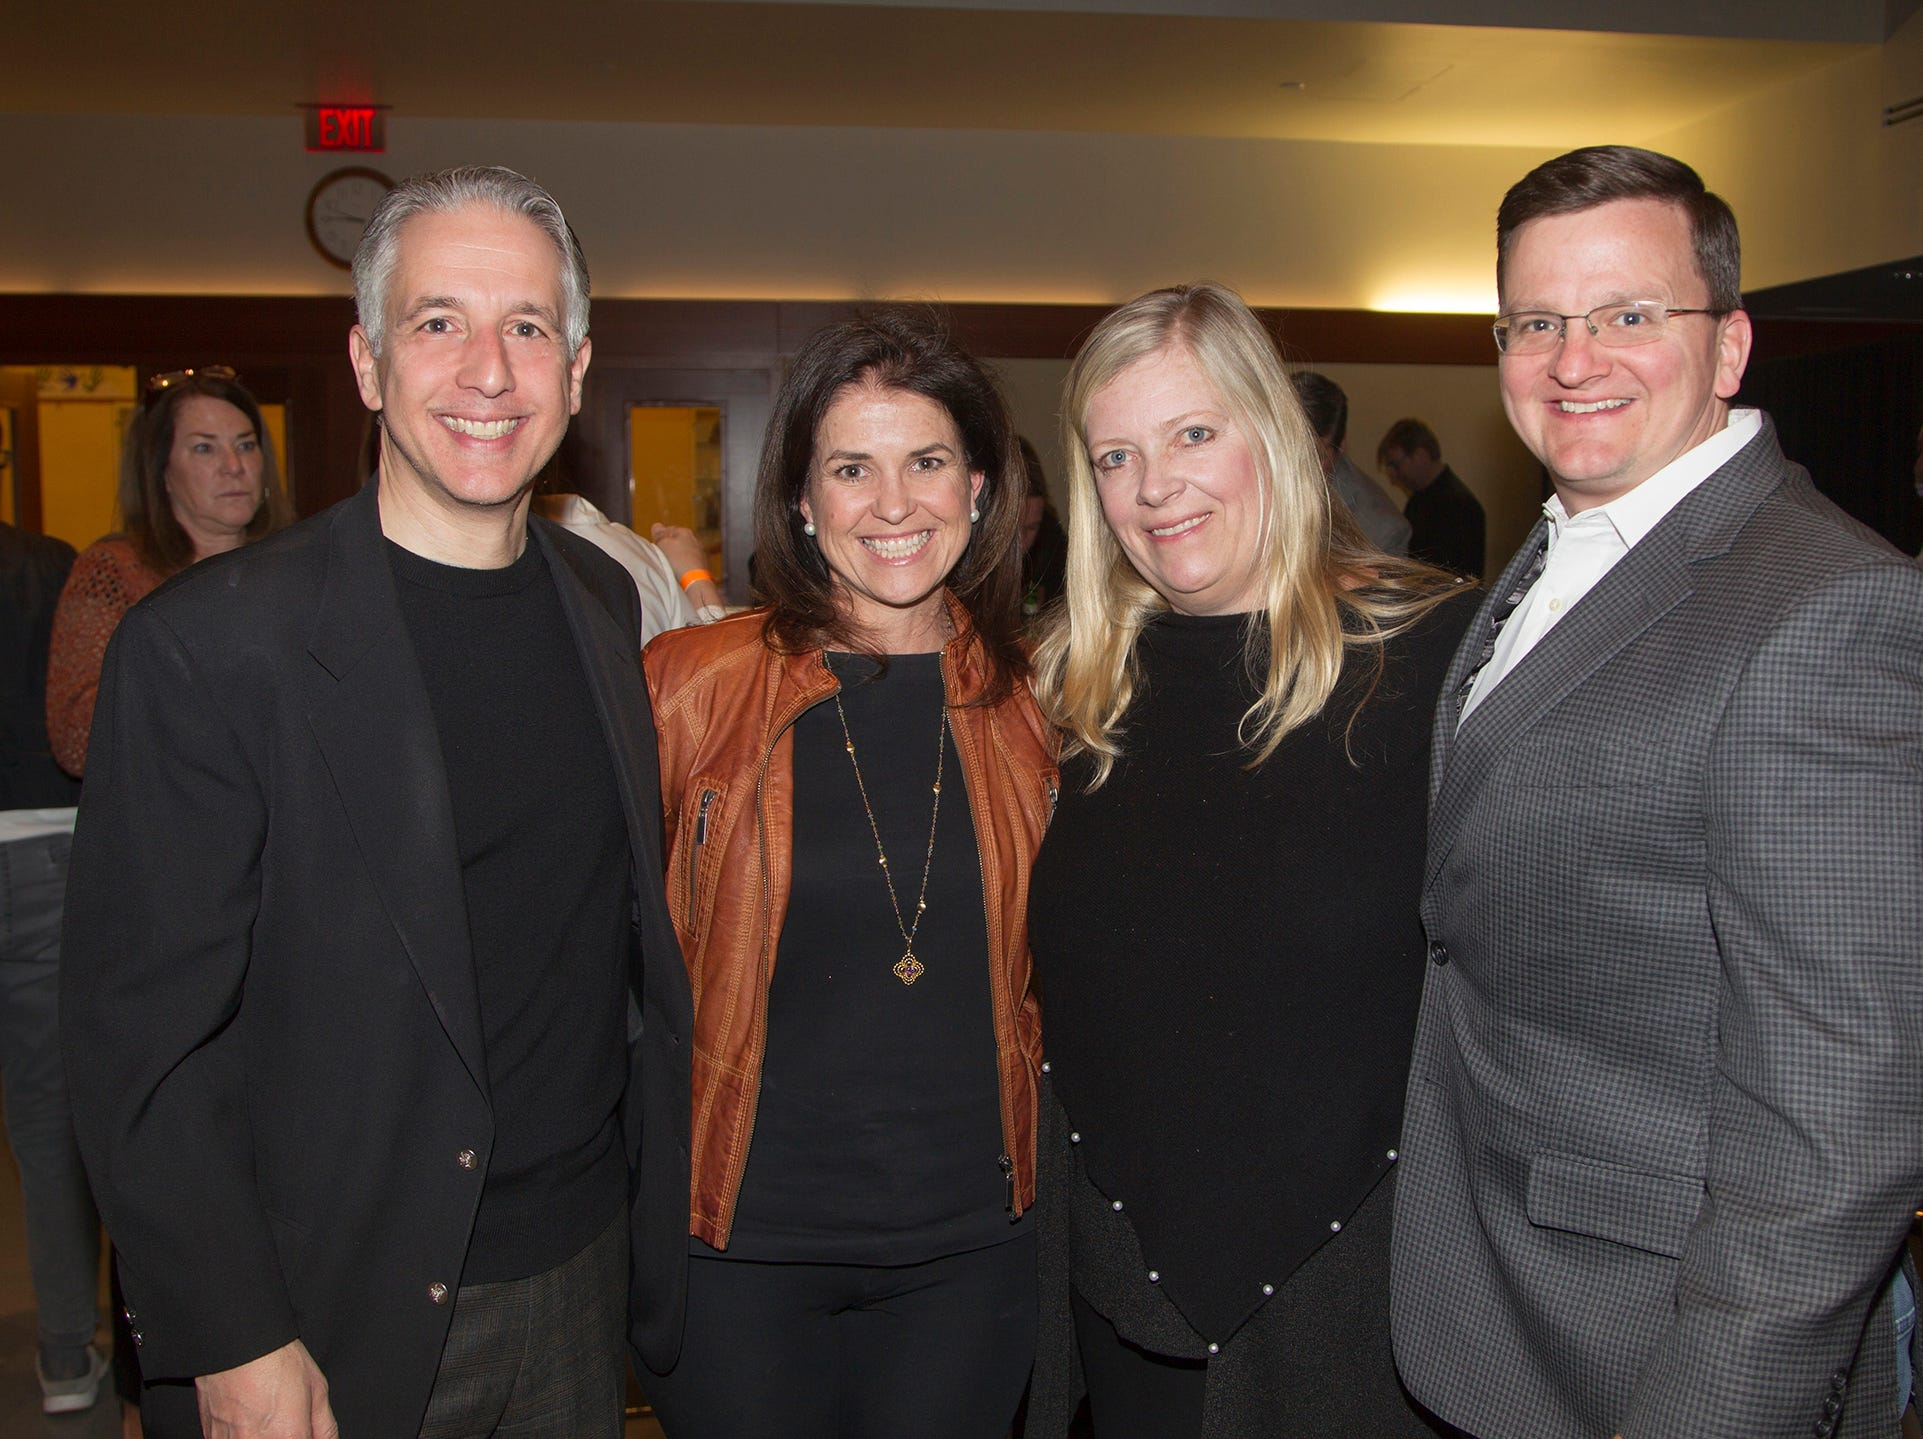 Assemblyman Christopher DePhillips, Patti Reynolds DePhillips, Elaine and Jamie Young. Anthony Kearns benefit concert to benefit Julia's Butterfly Foundation at West Side Presbyterian Church in Ridgewood. 3/23/2019